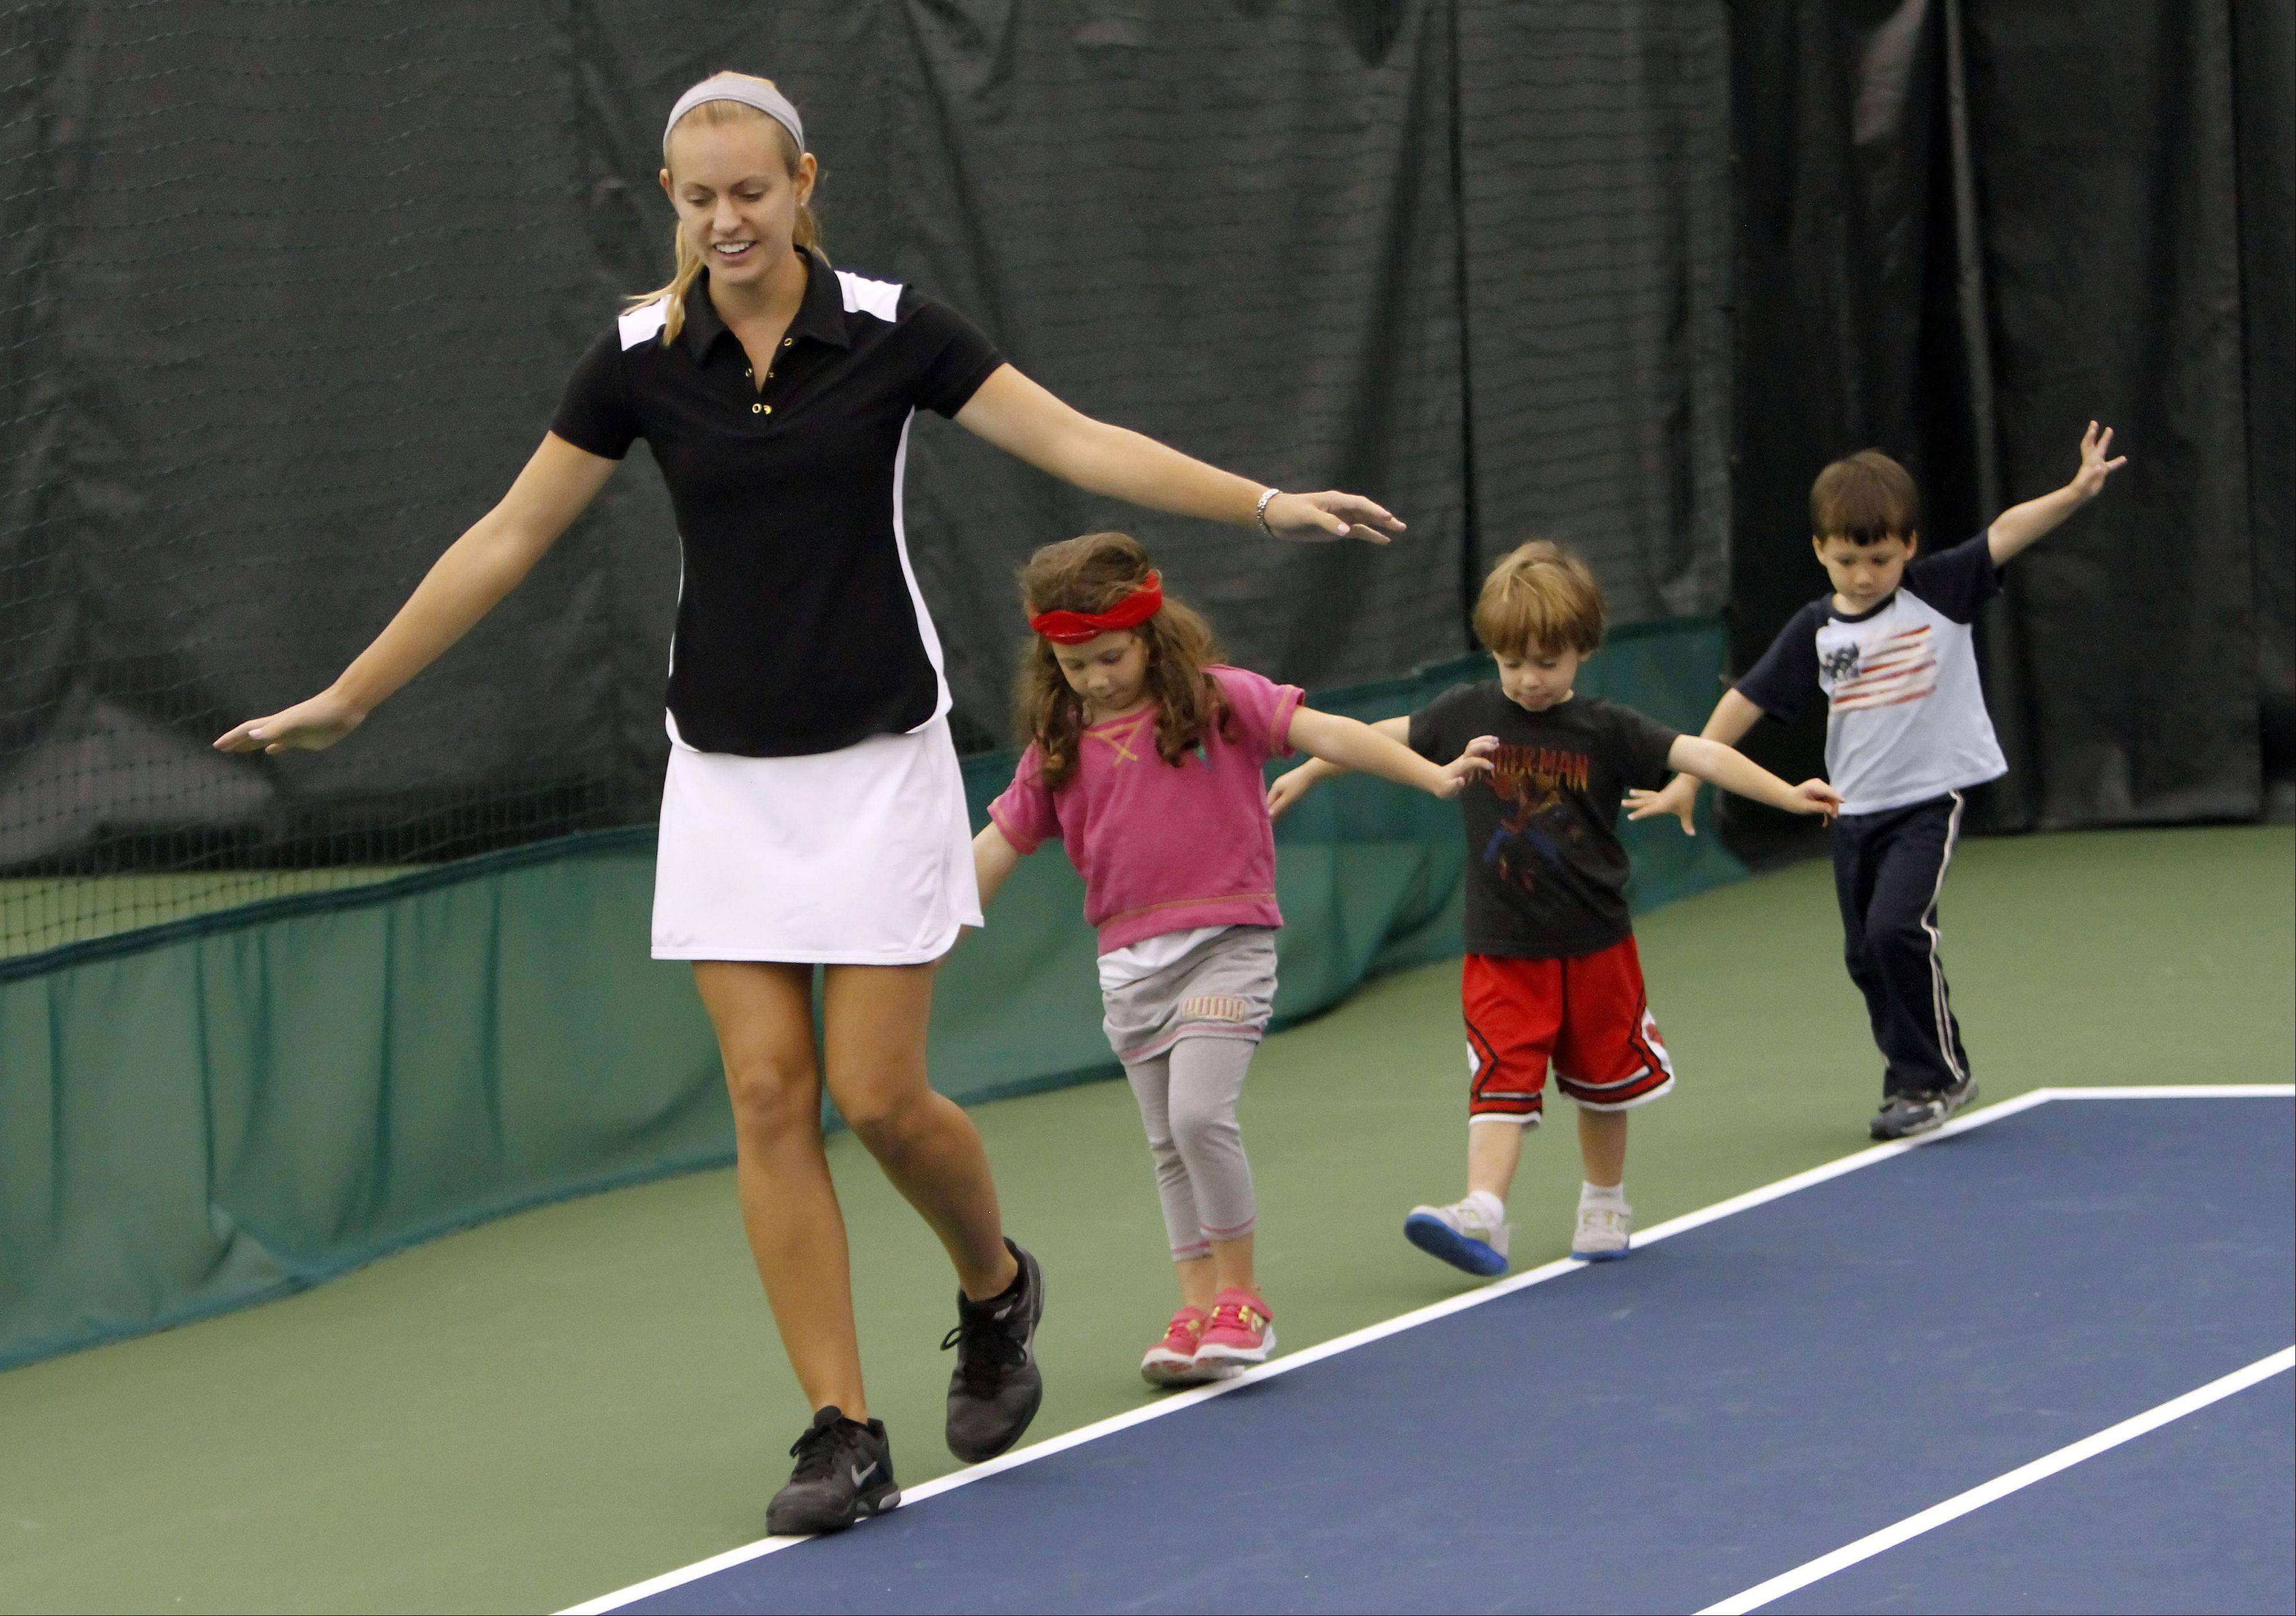 Instructor Blair McCarty leads kids on a balance drill during Midtown Athletic Club's tennis program for toddlers in Bannockburn. Tennis Explorers blends physical activities, tennis skills and storytelling in an on-court environment.